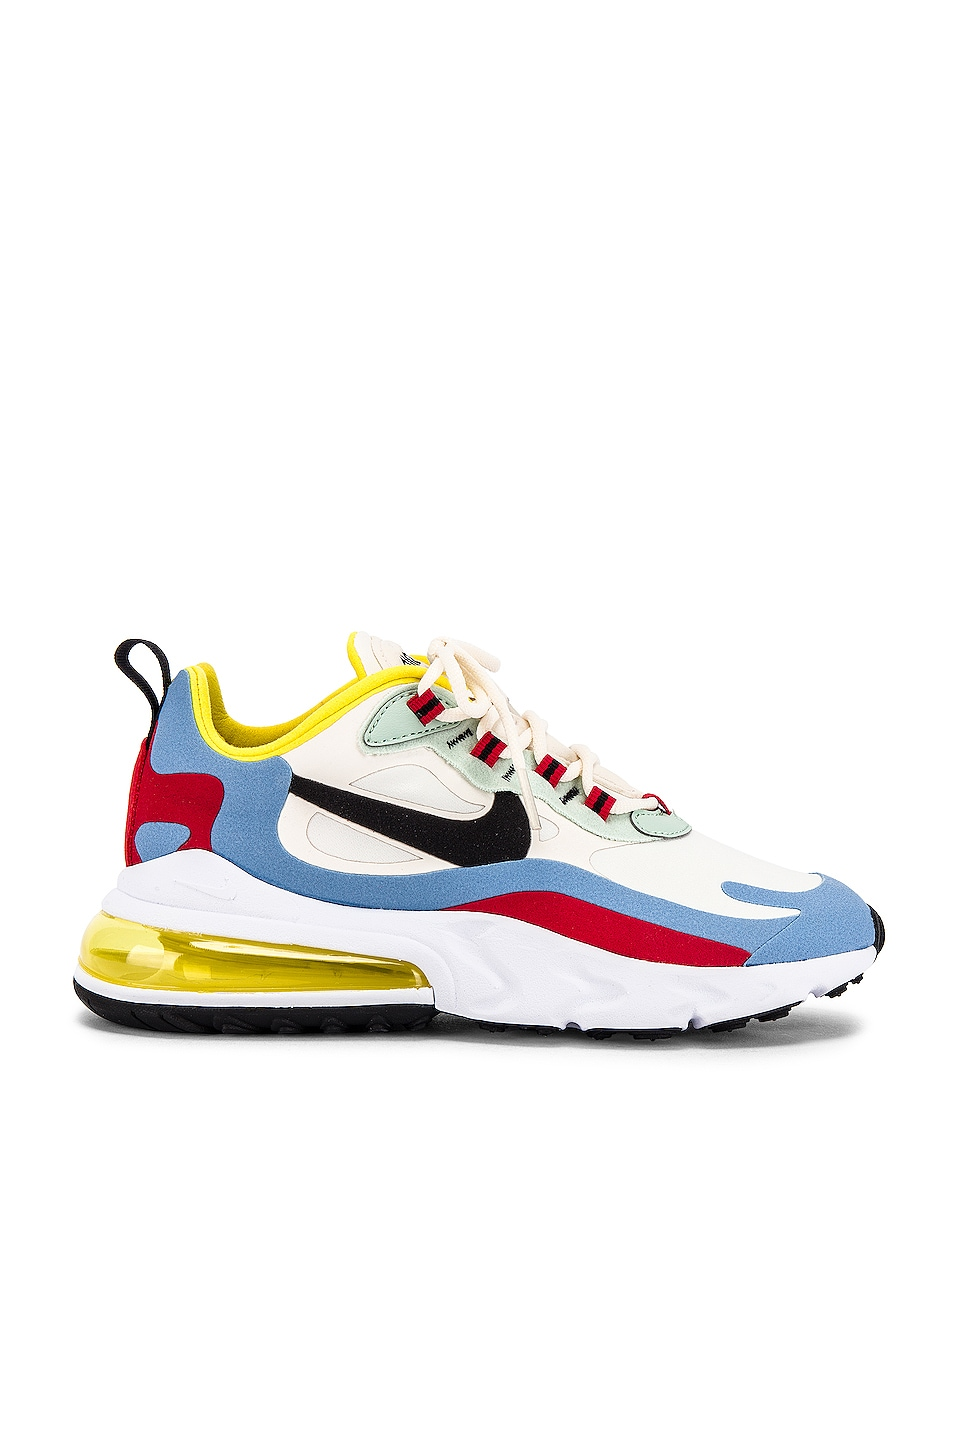 Nike Air Max 270 React Sneaker in Yellow, Light Blue, Red & Black